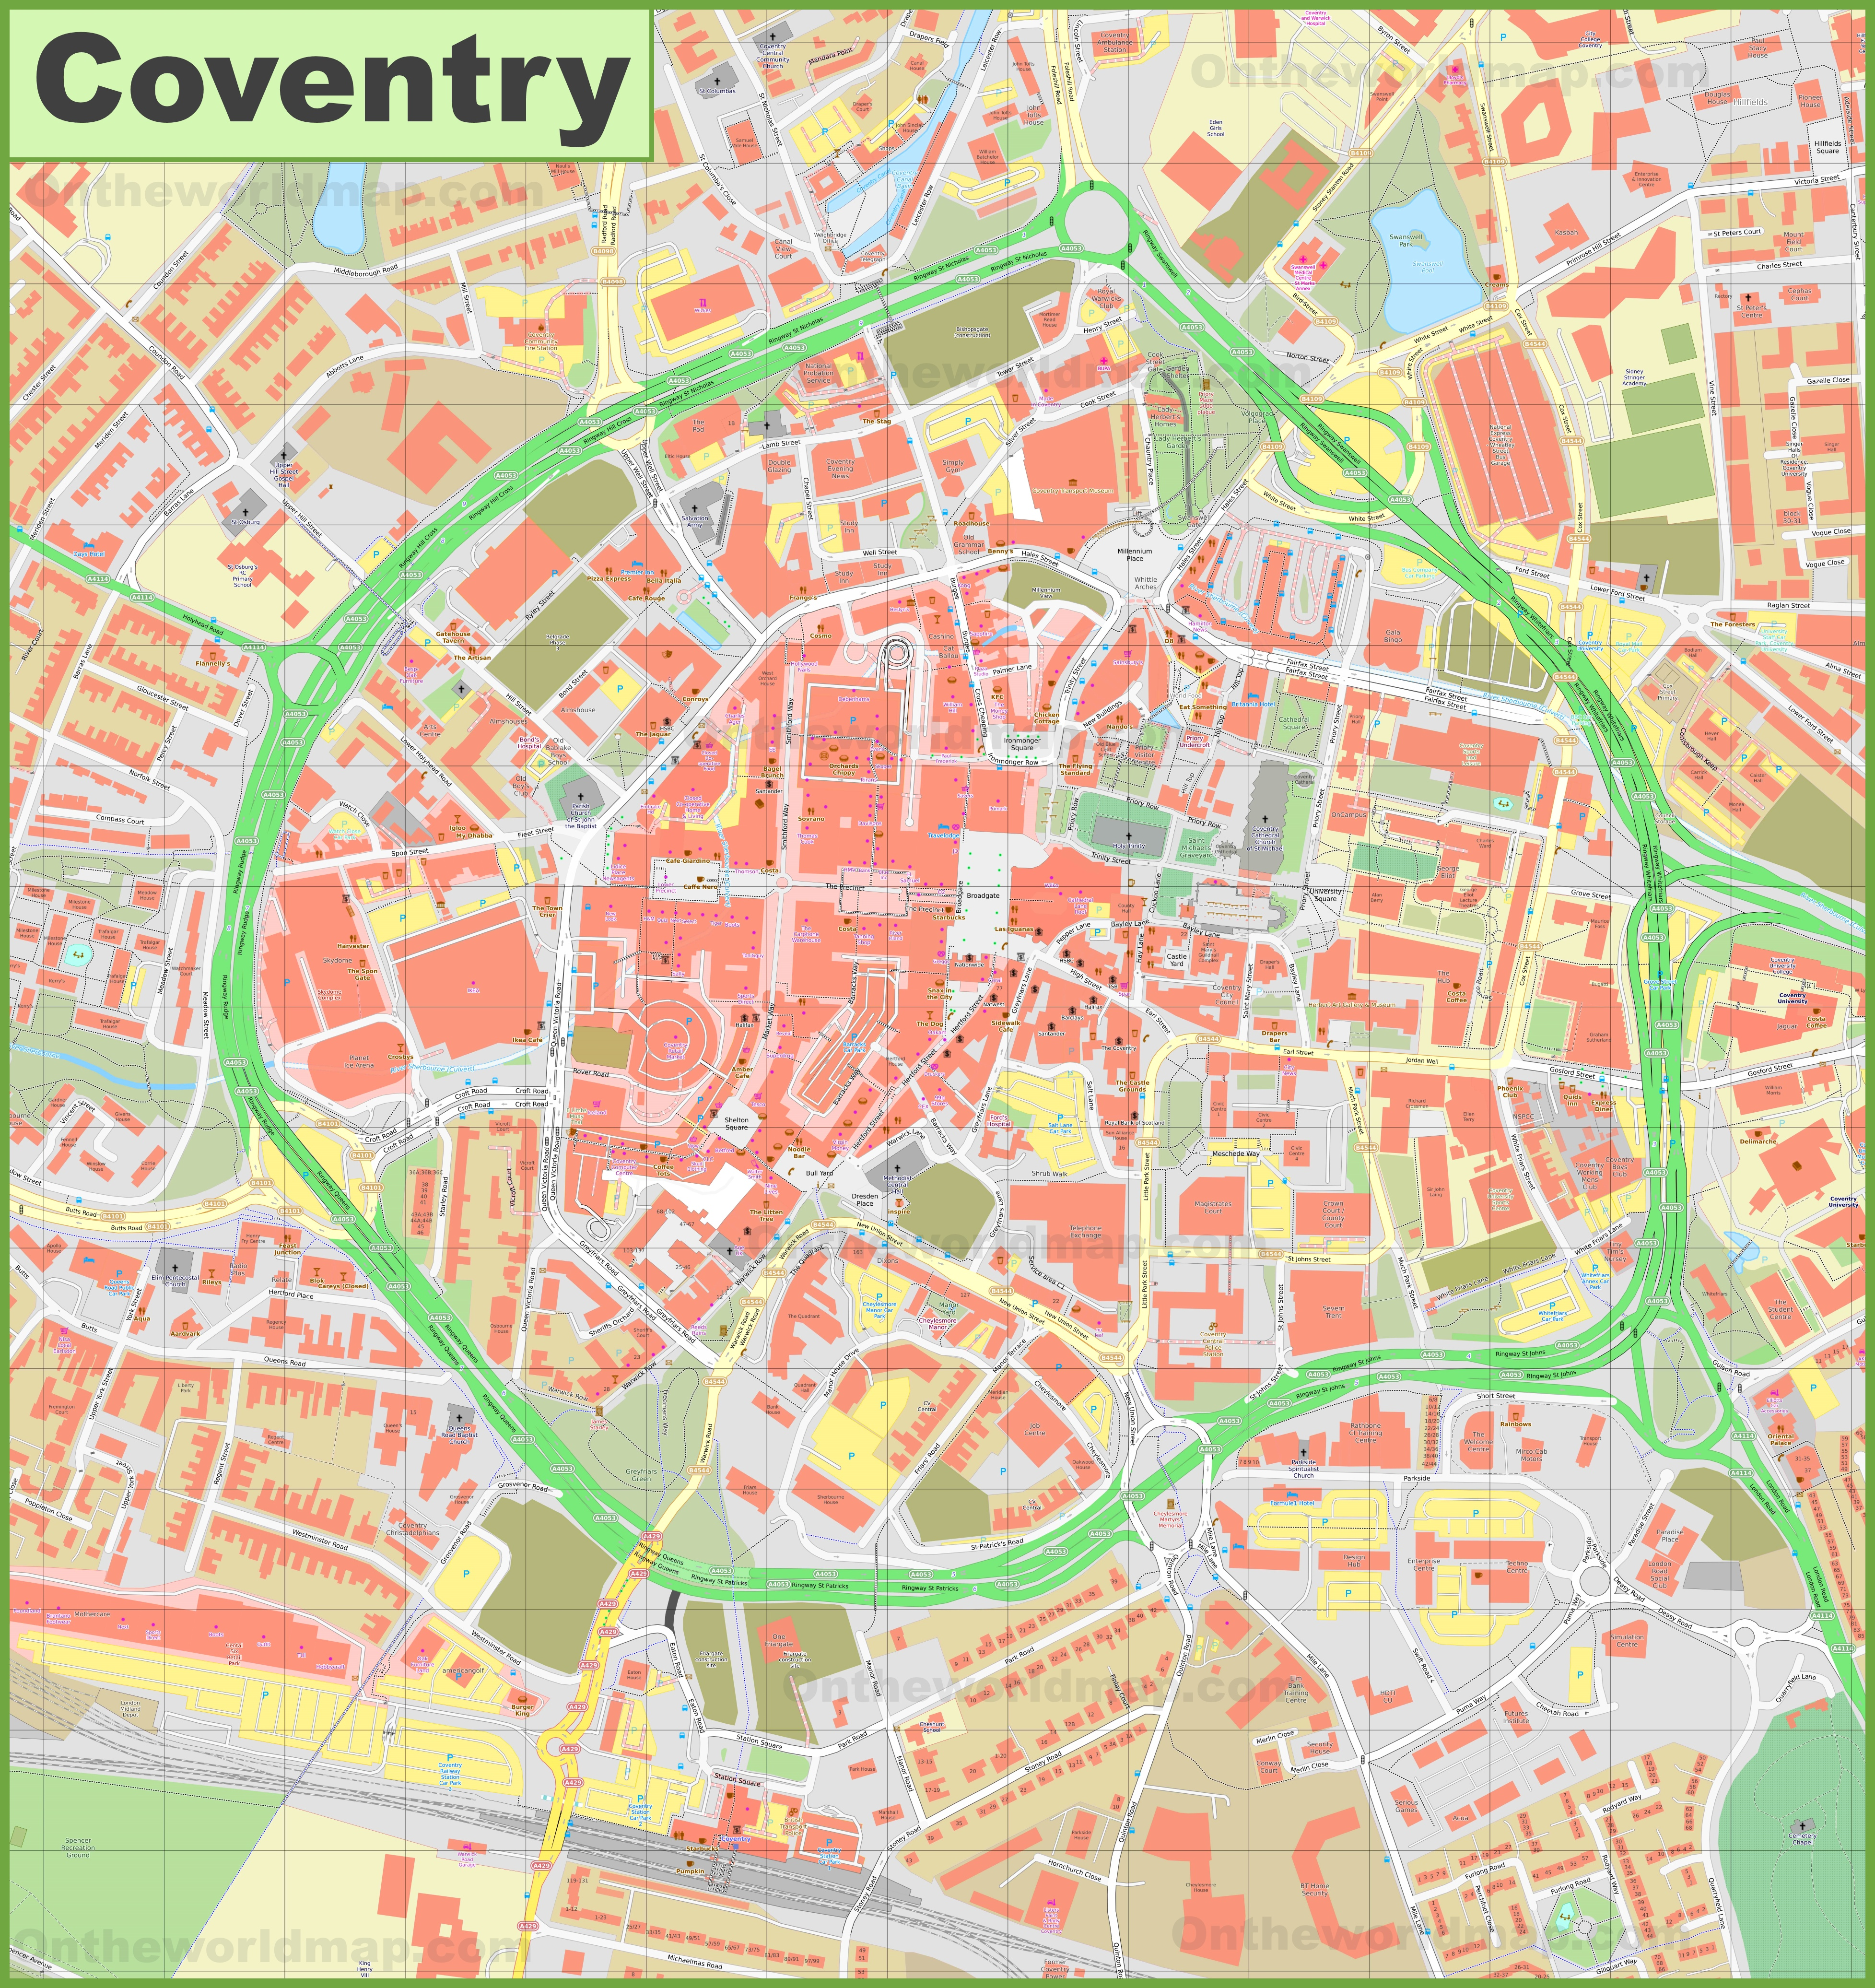 Coventry City Centre Map Coventry city center map Coventry City Centre Map